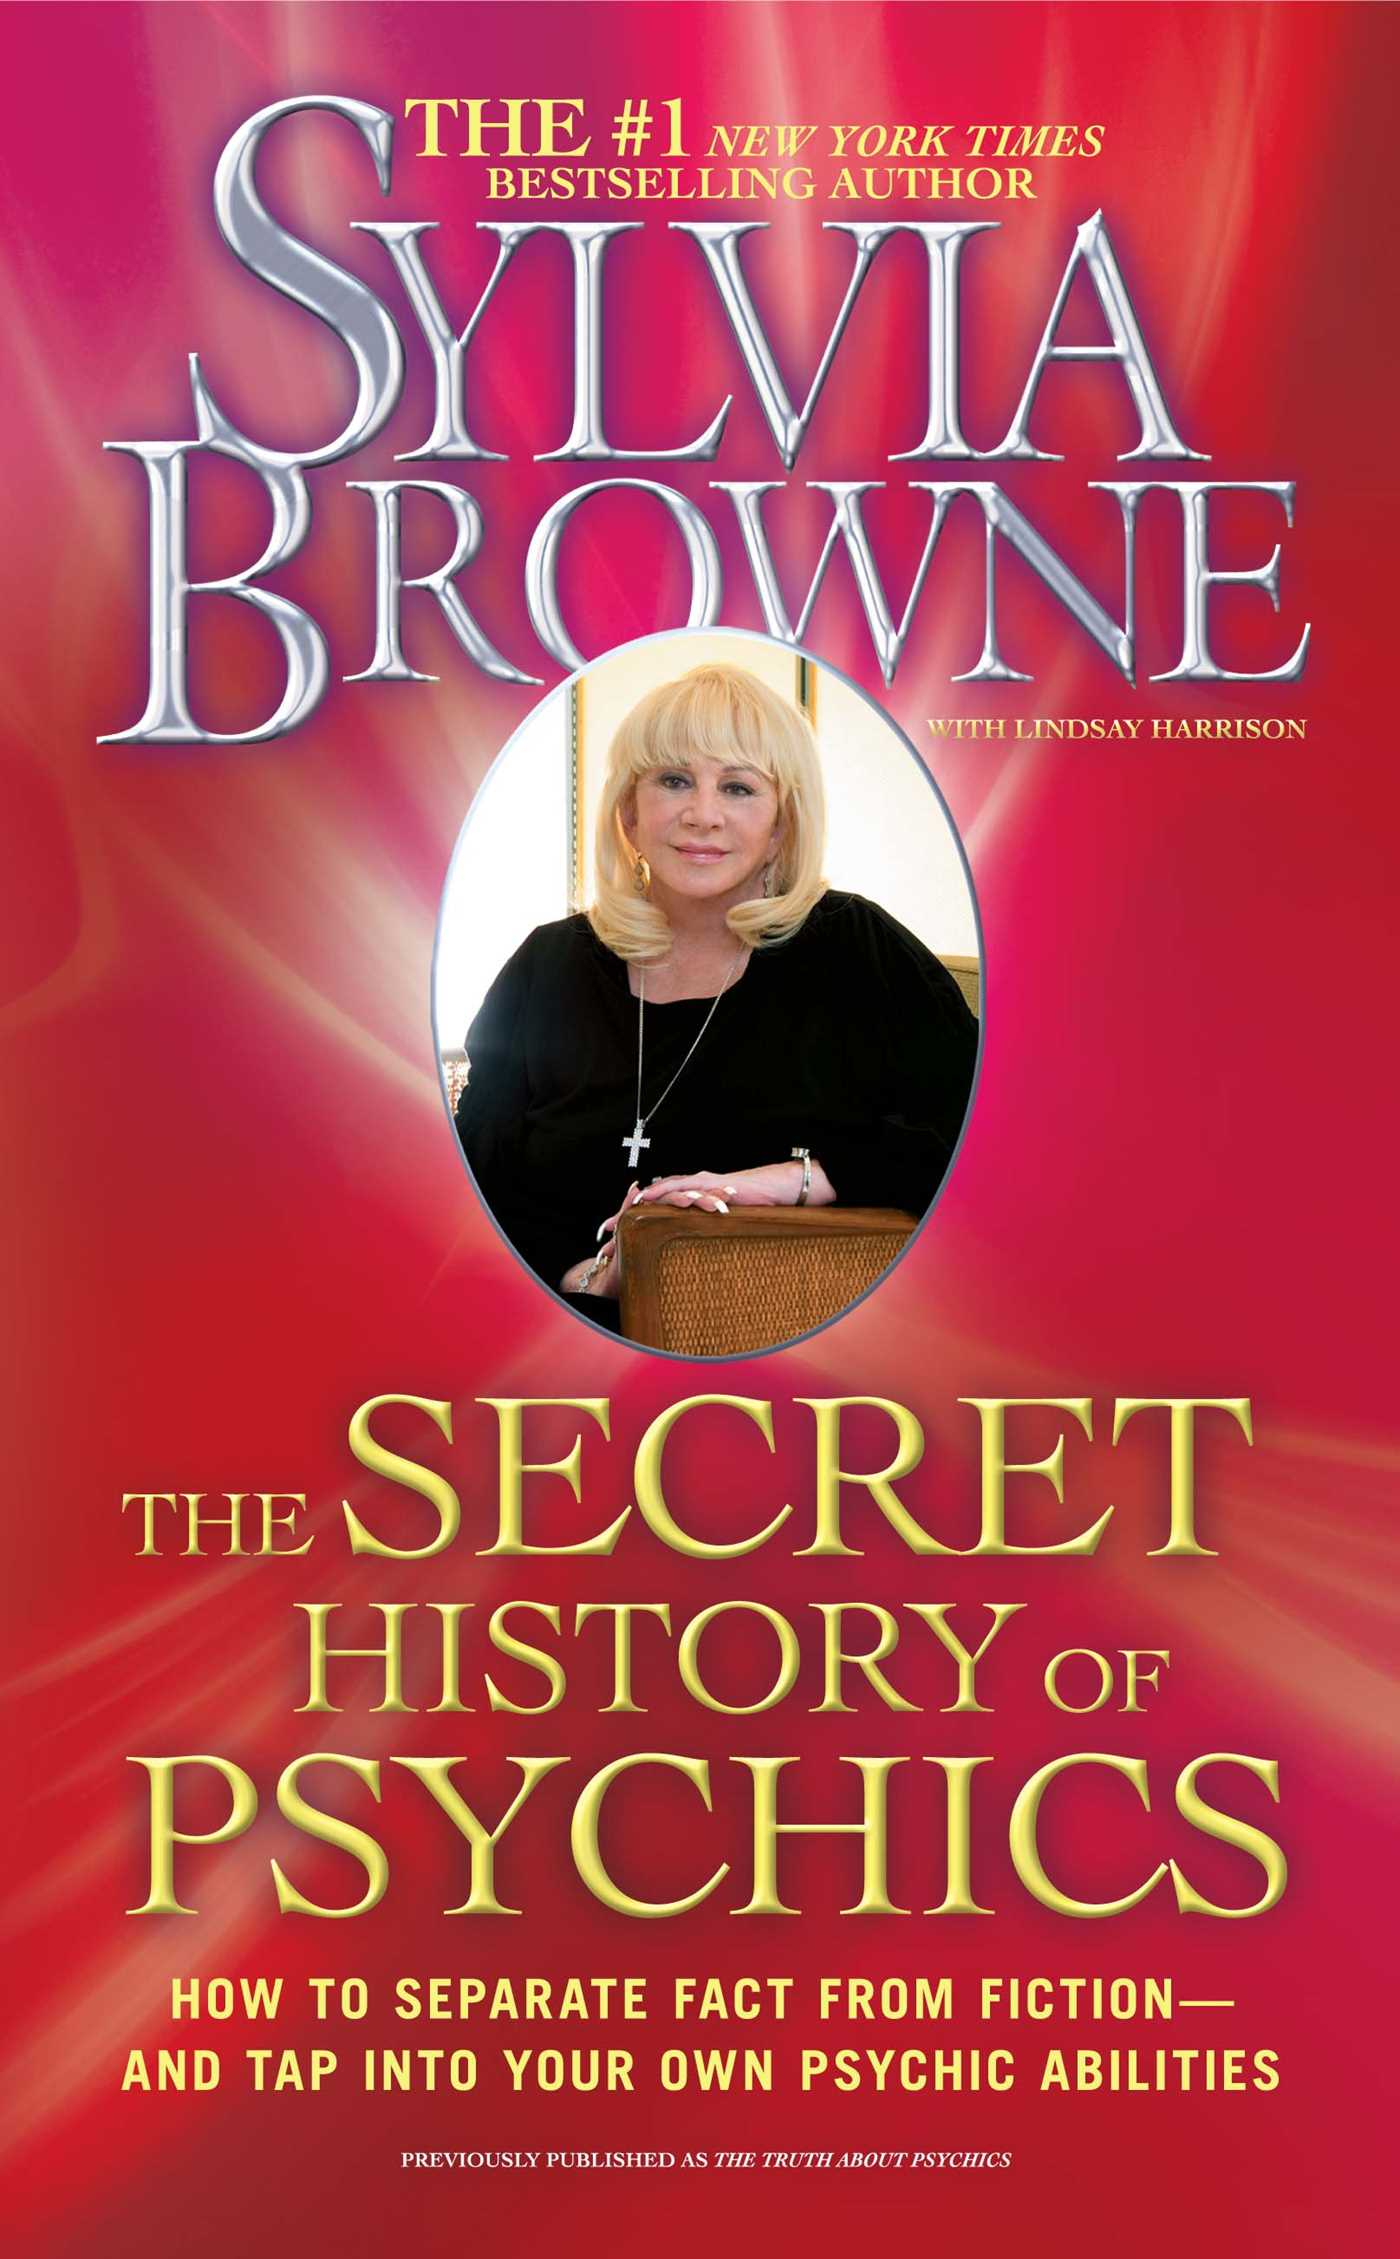 Secret-history-of-psychics-9781439150504_hr